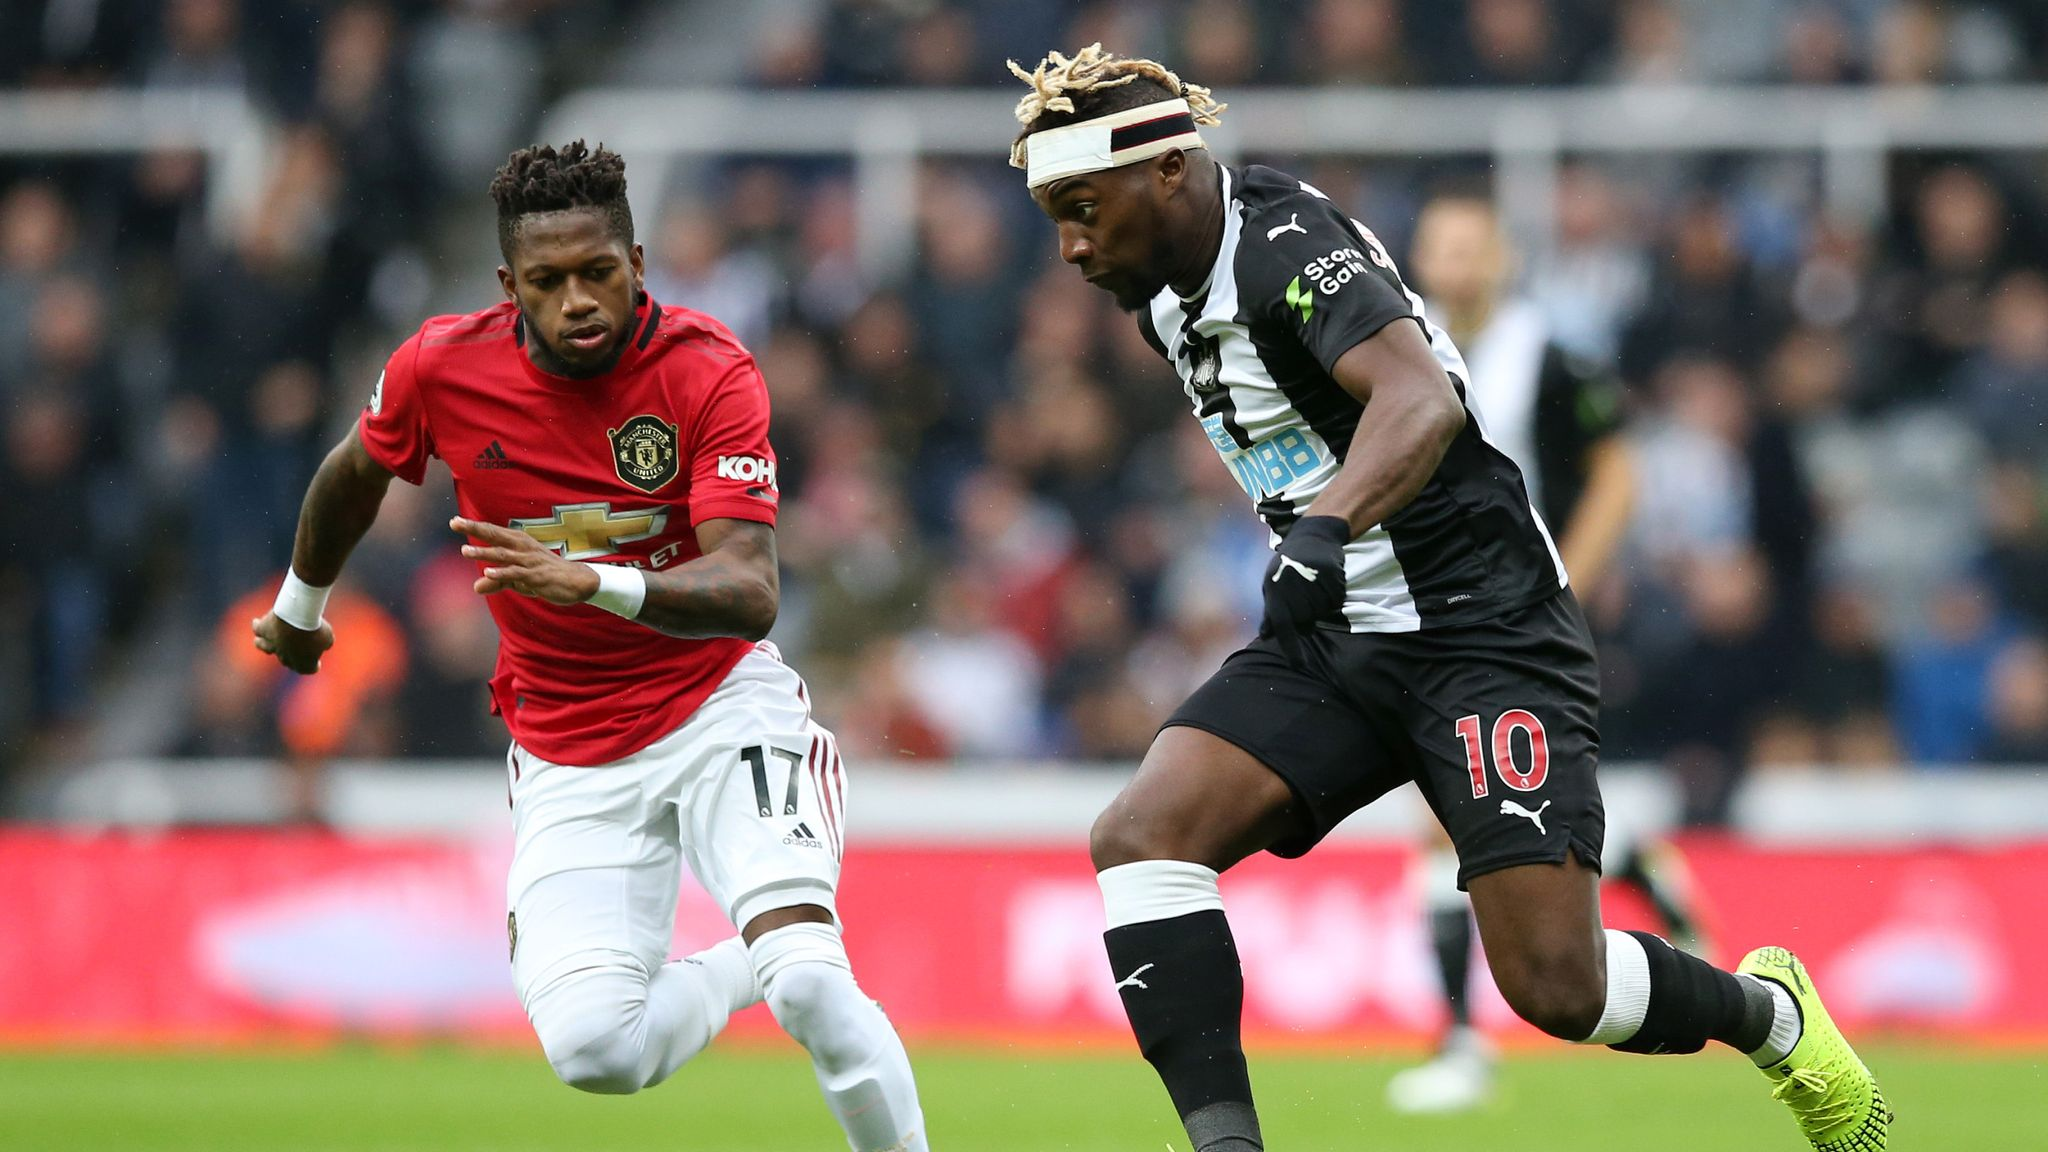 Allan Saint-Maximin: Newcastle winger pays price for pace